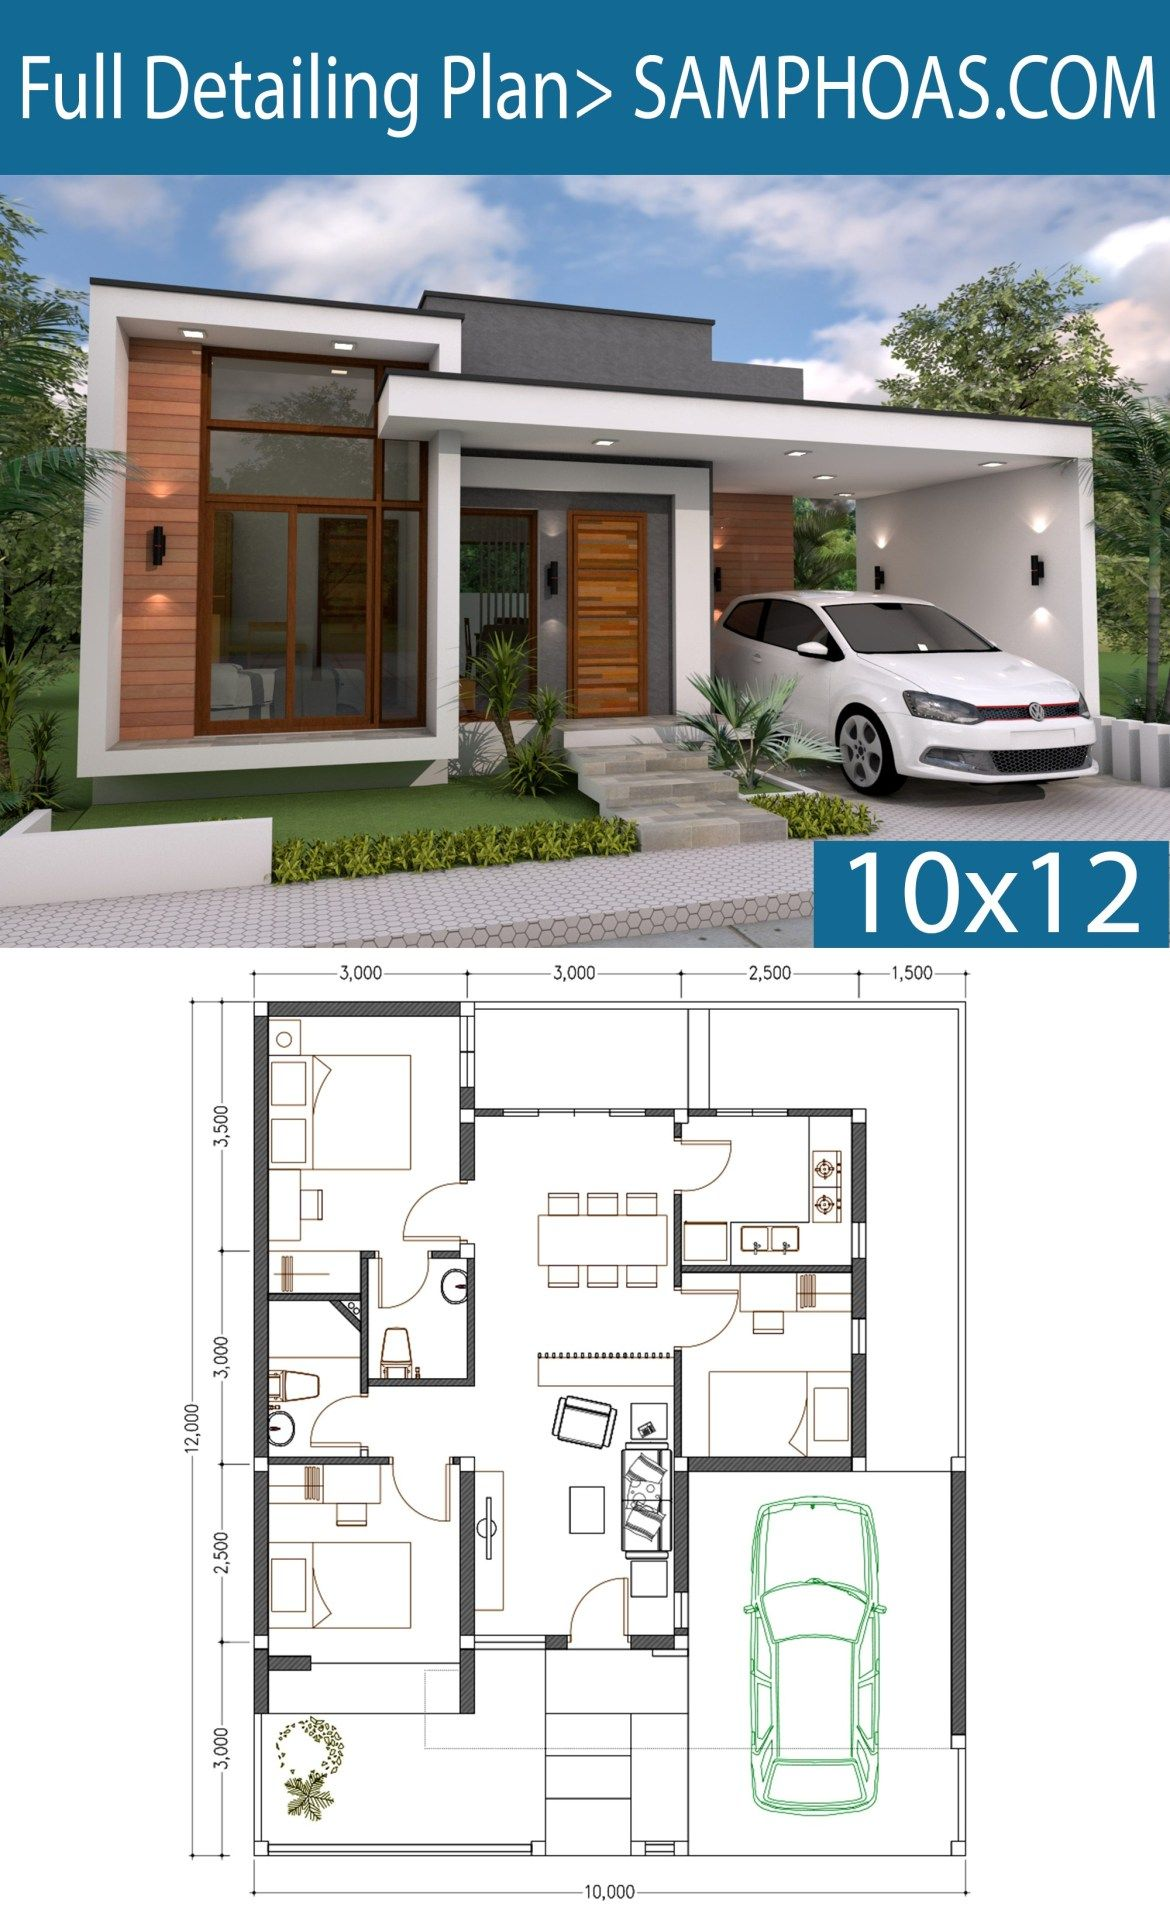 3 Bedrooms Home Design Plan 10x12m Modern House Plans